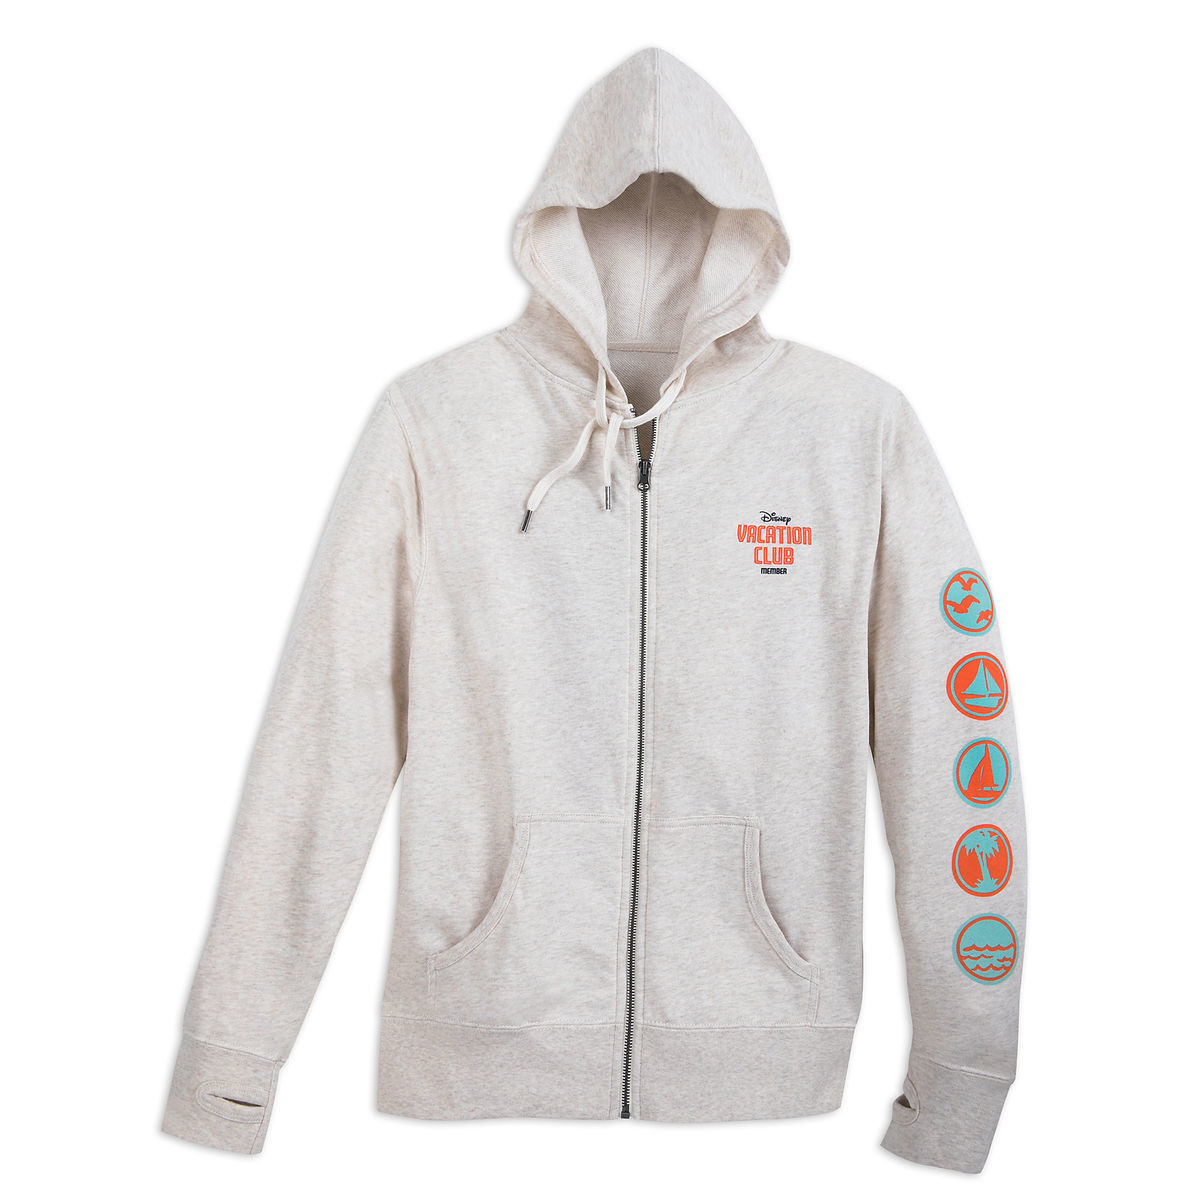 Member Product Vacation For Women Hoodie Club Image Disney Of 1 Zip qrwqAX